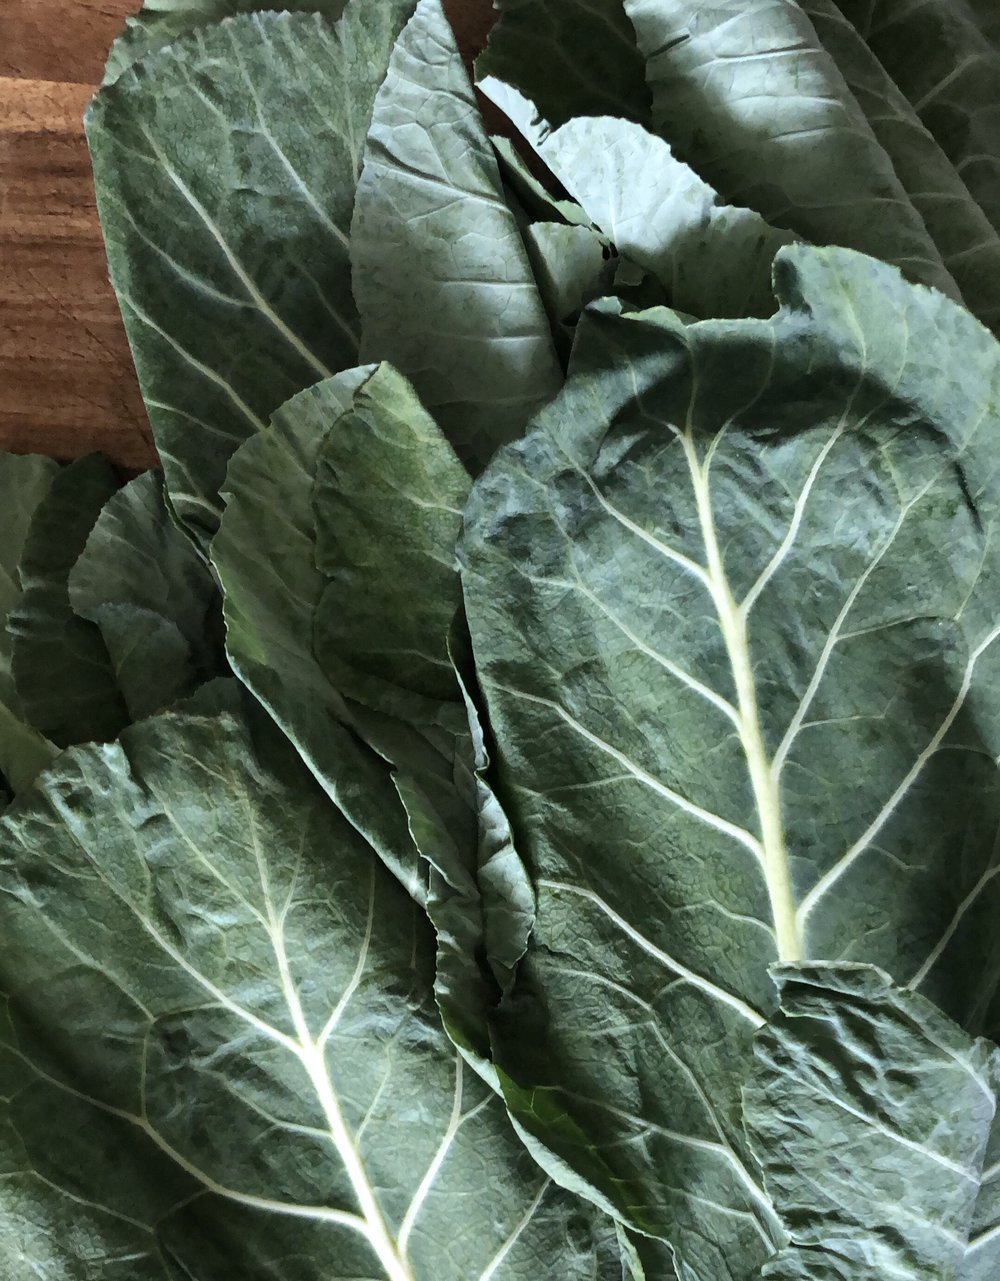 Start with 15-20 Leaves of Collard Greens.